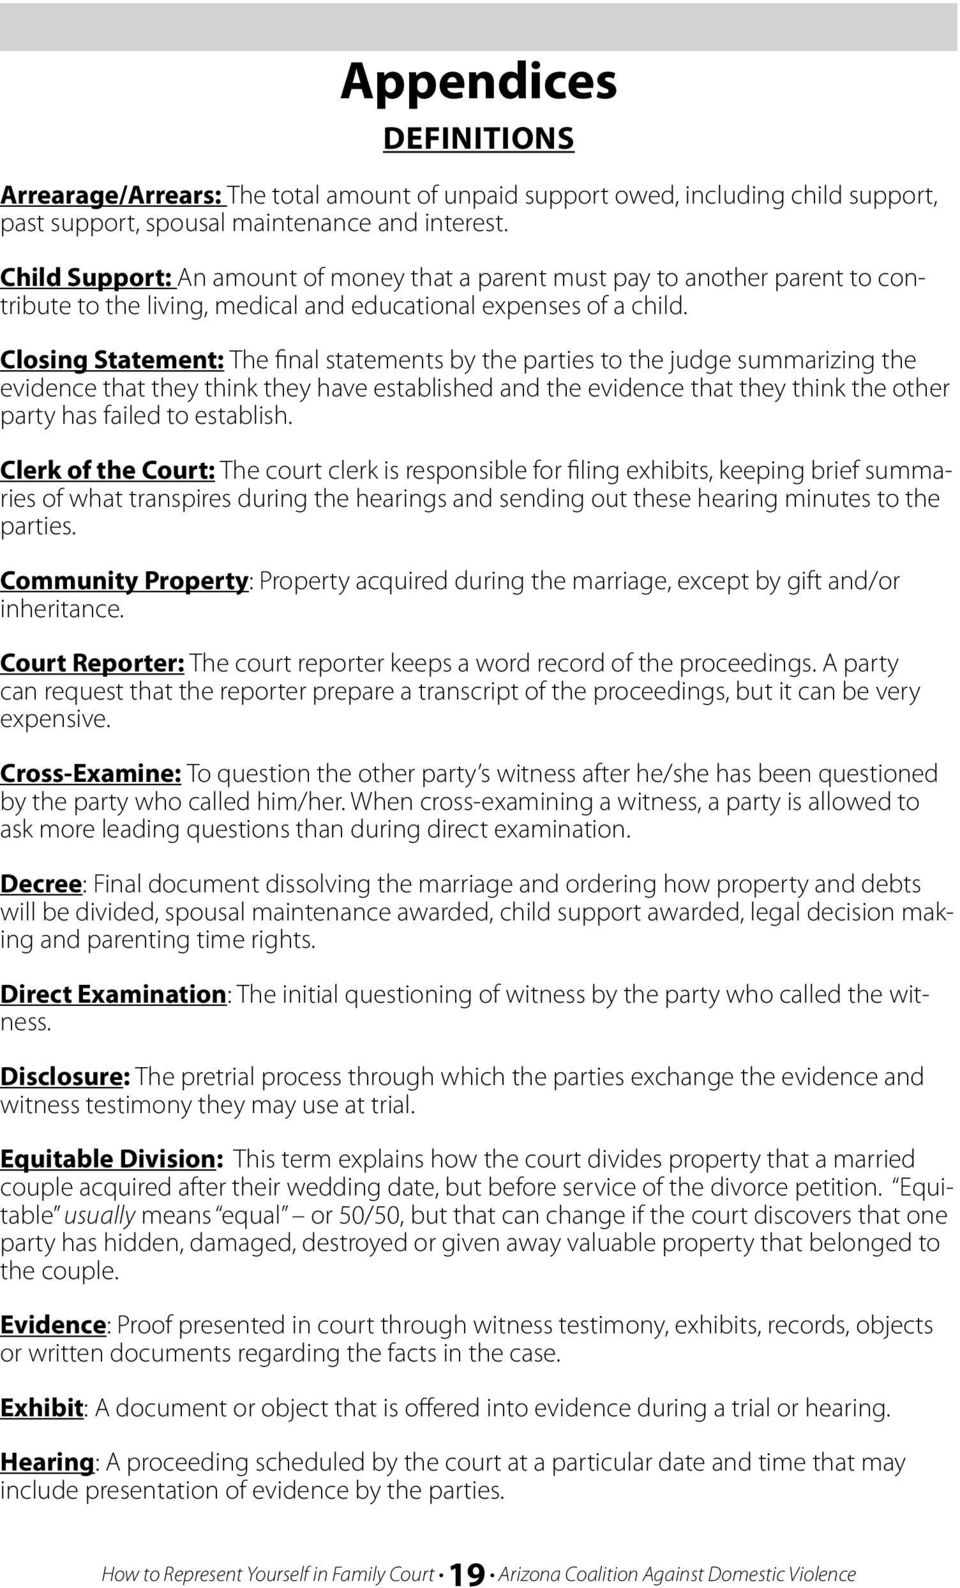 Closing Statement: The final statements by the parties to the judge summarizing the evidence that they think they have established and the evidence that they think the other party has failed to